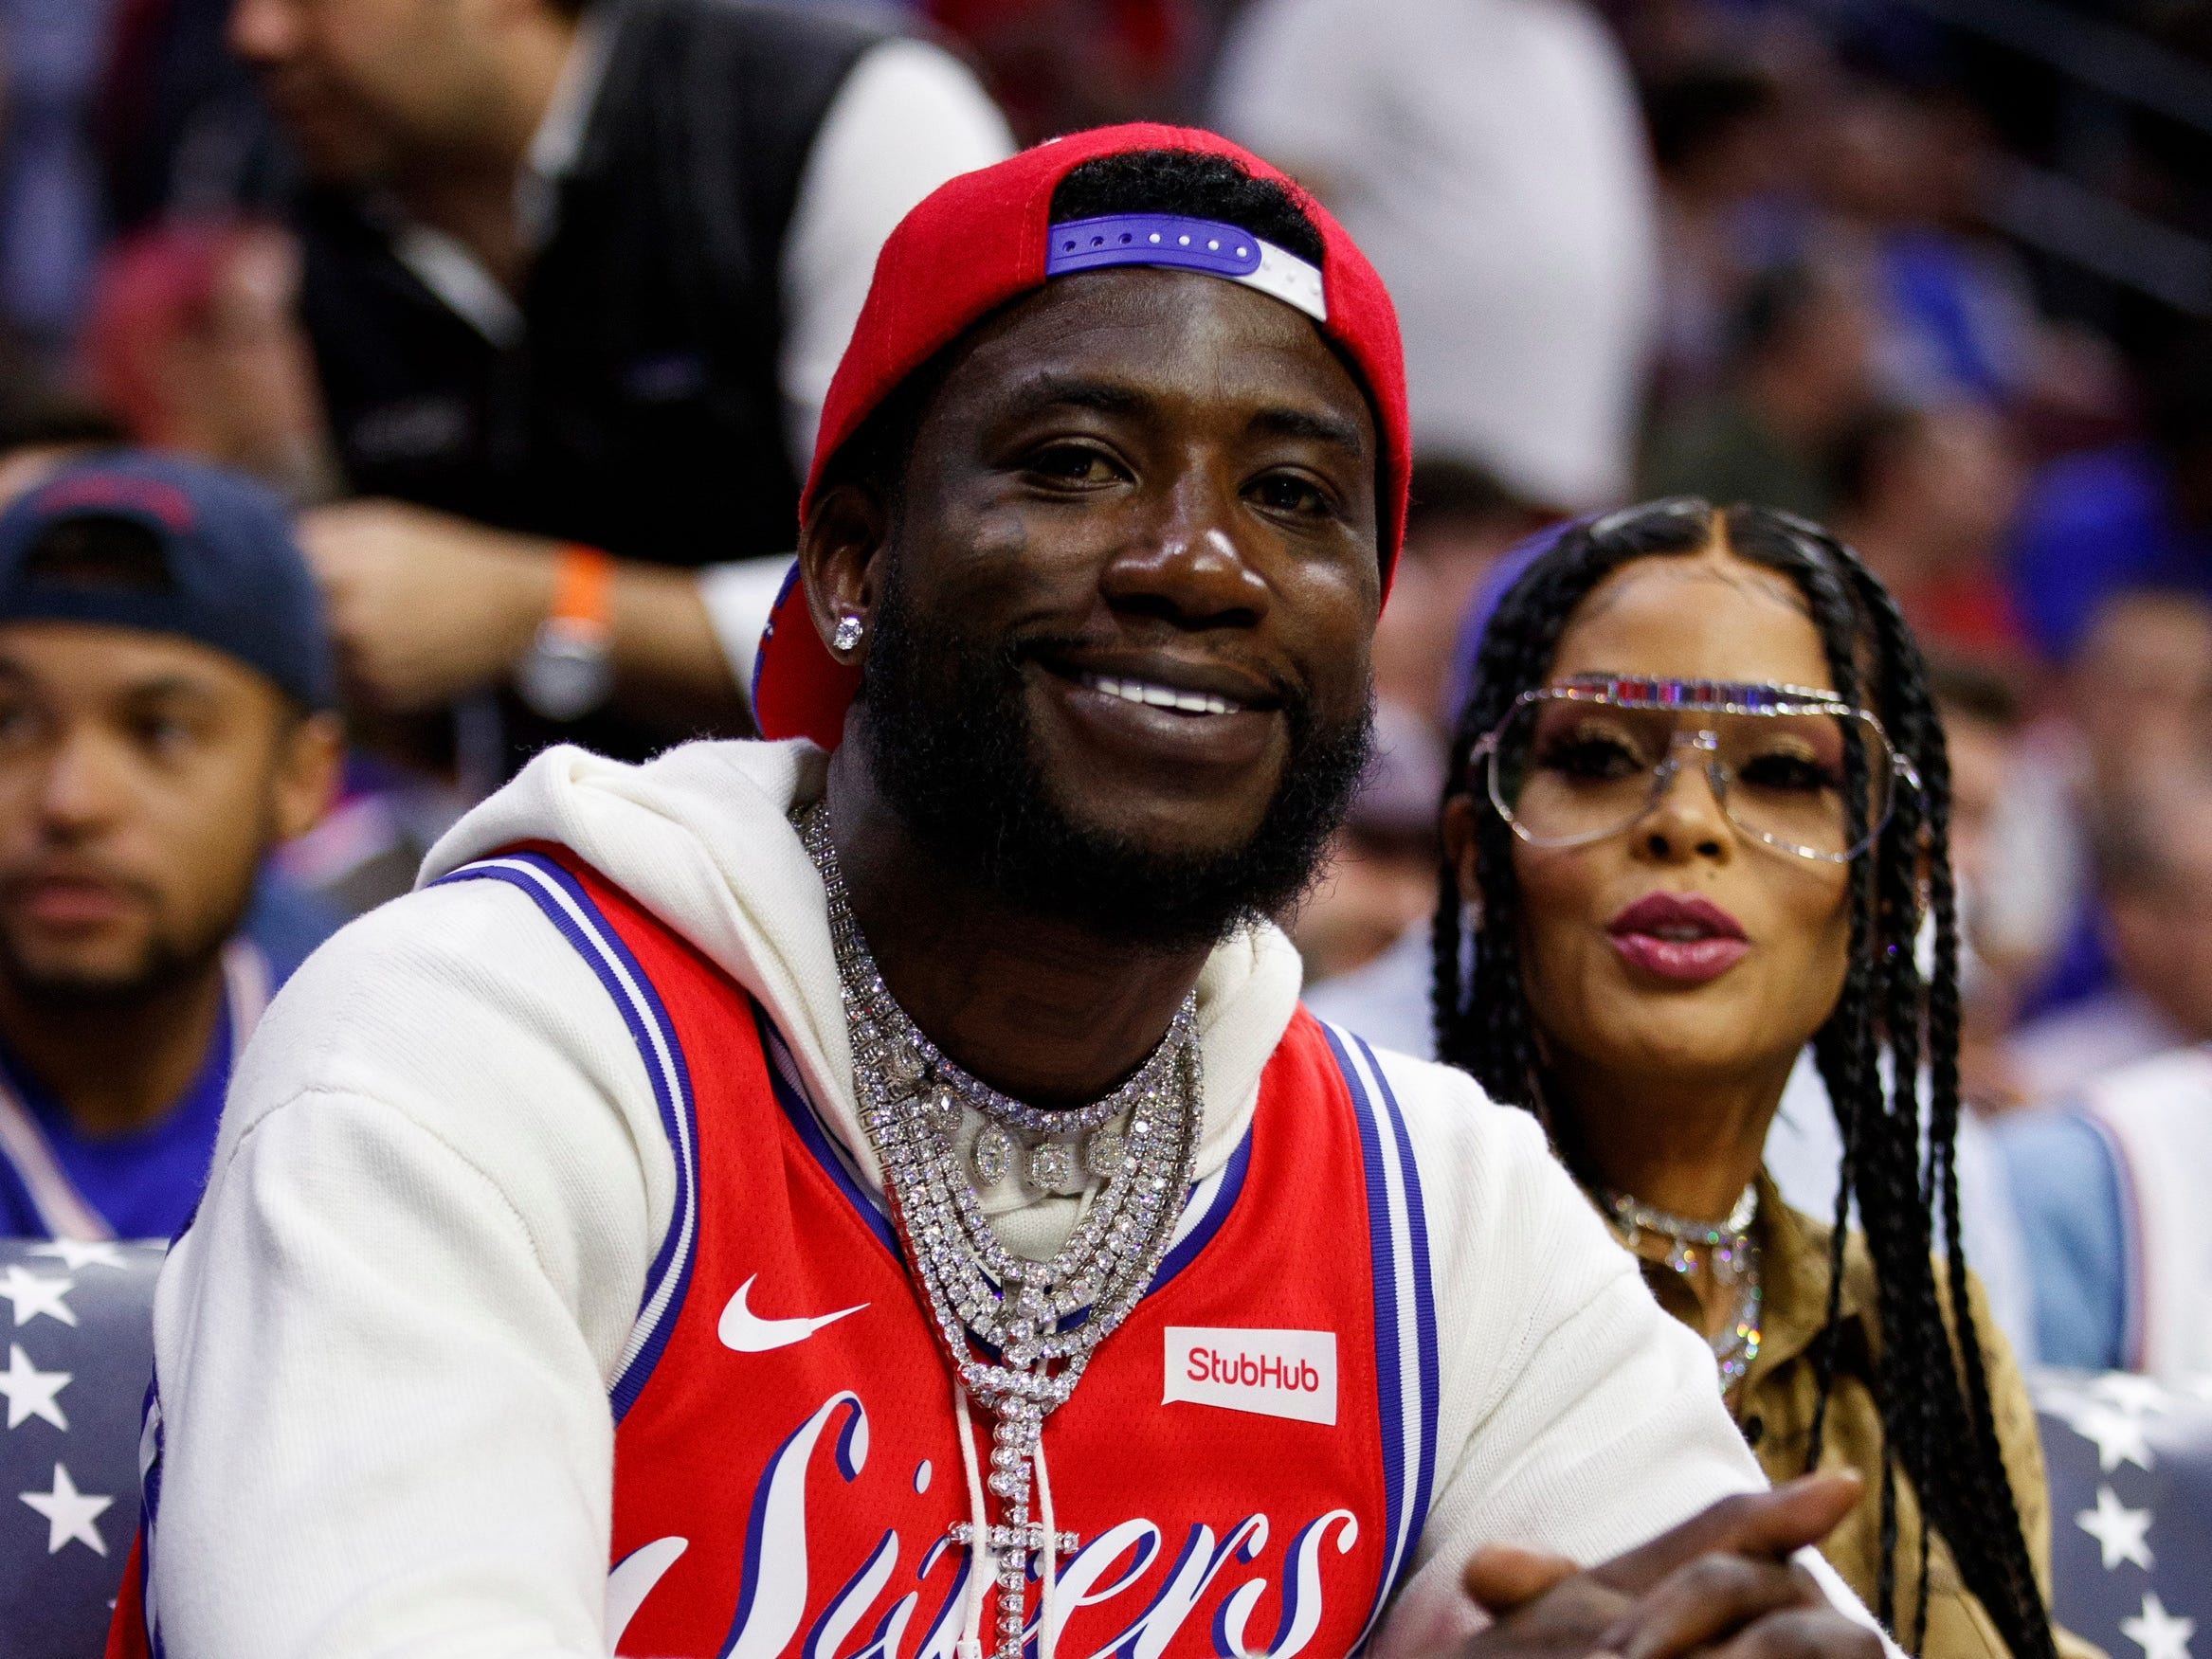 April 23: Rapper Gucci Mane and model Keyshia Ka'oir Davis look on during Game 5 between the 76ers and Nets in Philadelphia.